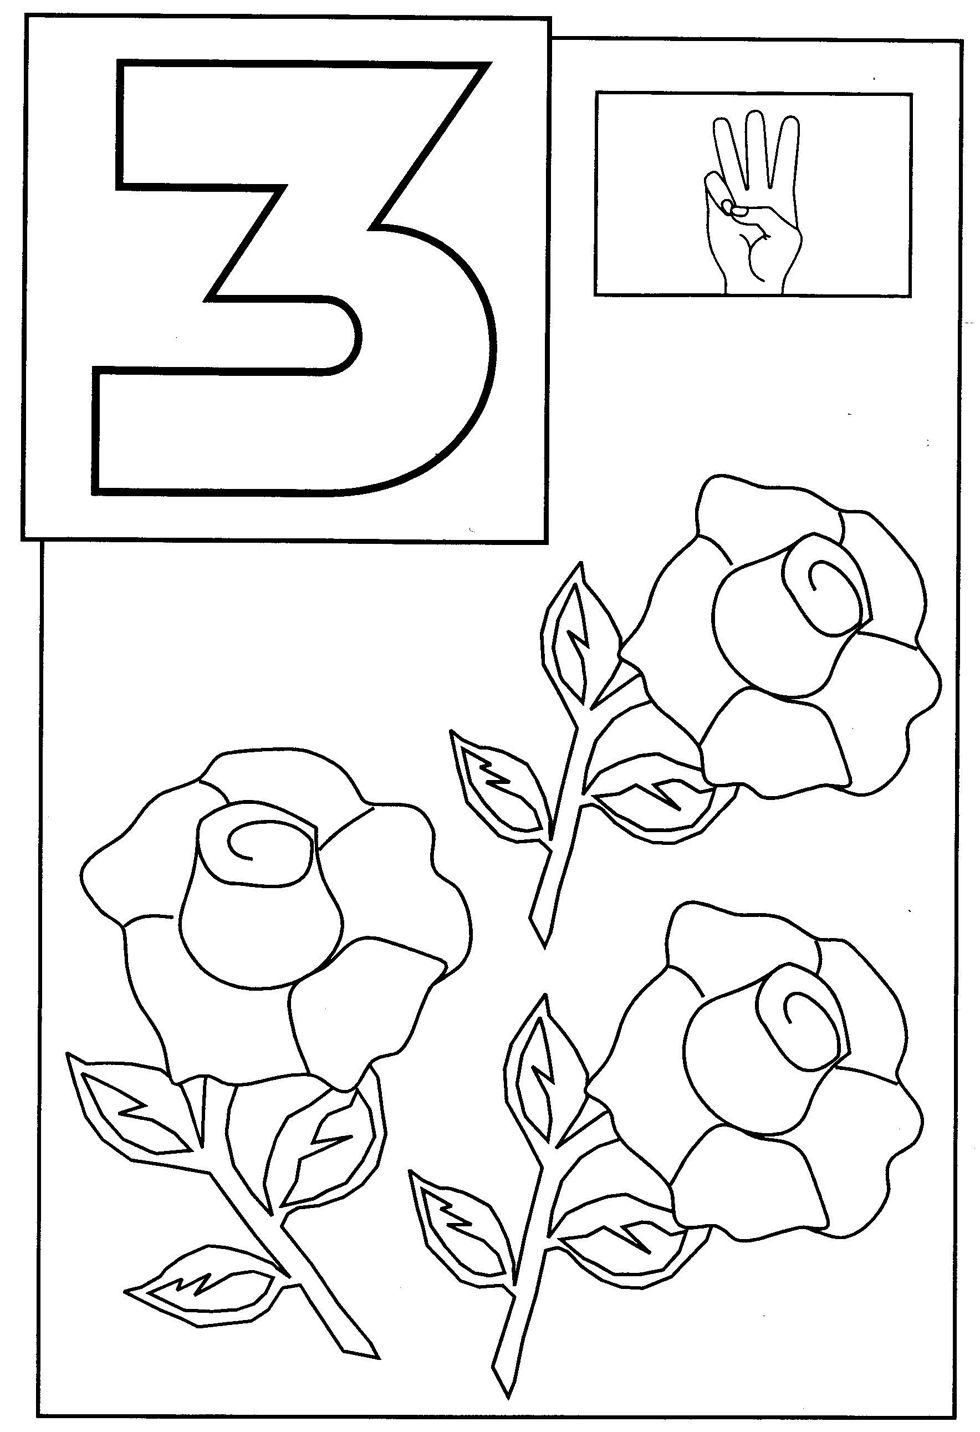 3 coloring sheet number three coloring page a free math coloring printable coloring 3 sheet